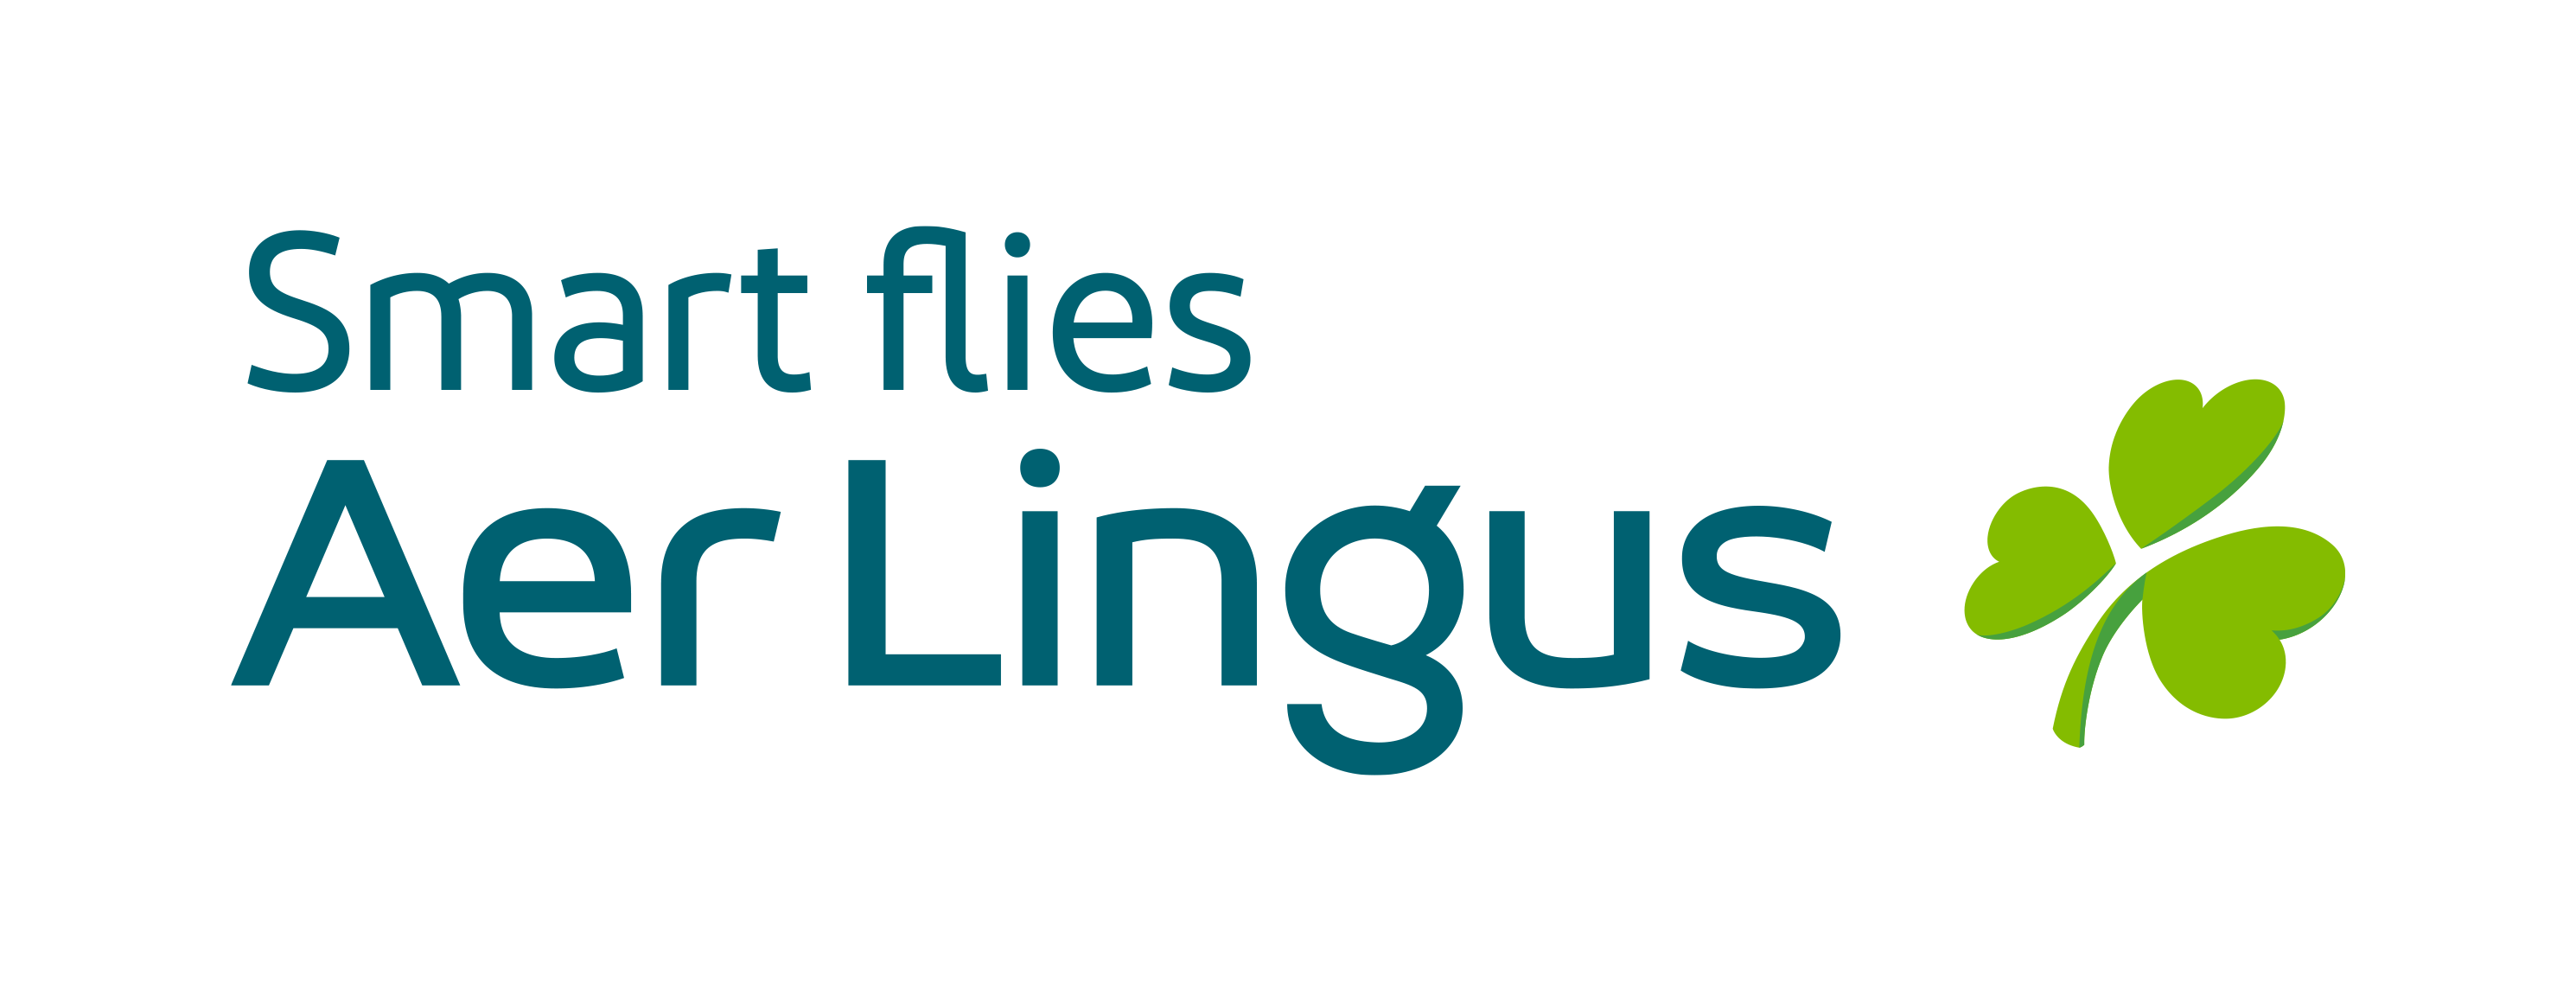 Smart flies Aer Lingus